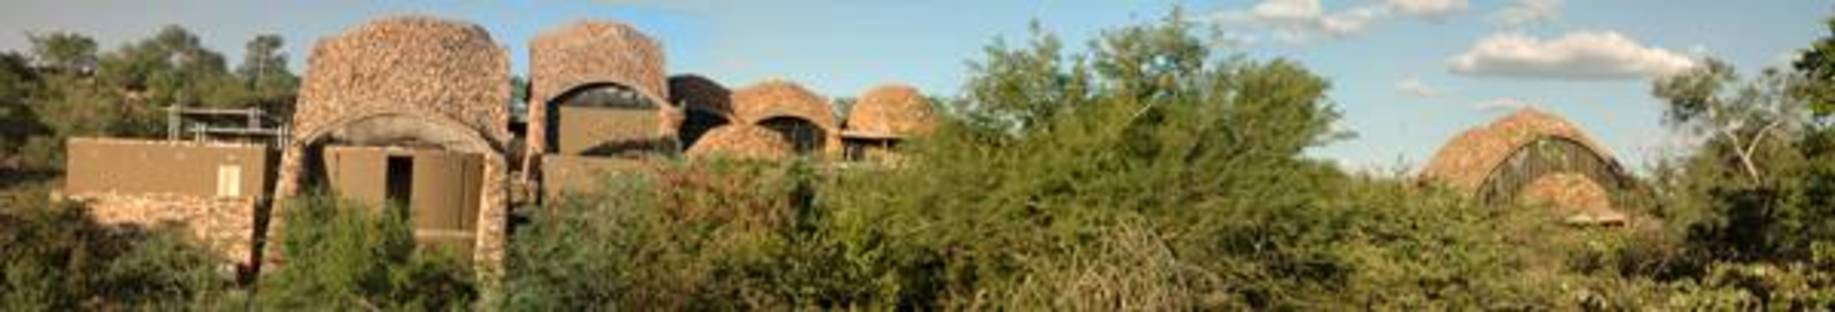 Vista d'insieme del Mapungubwe Interpretation Centre